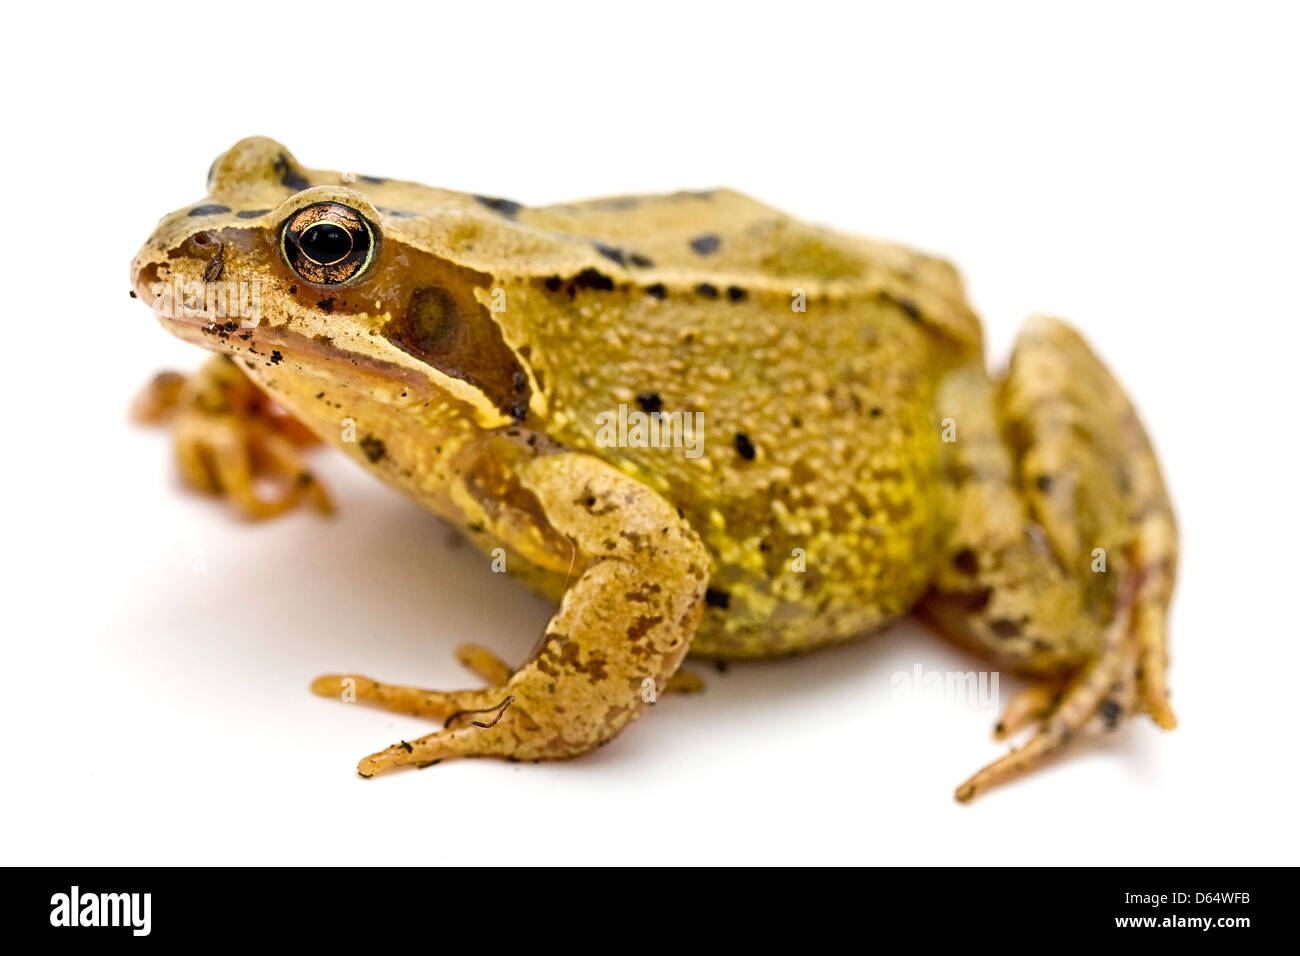 Studio style landscape photograph of a common frog. - Stock Image